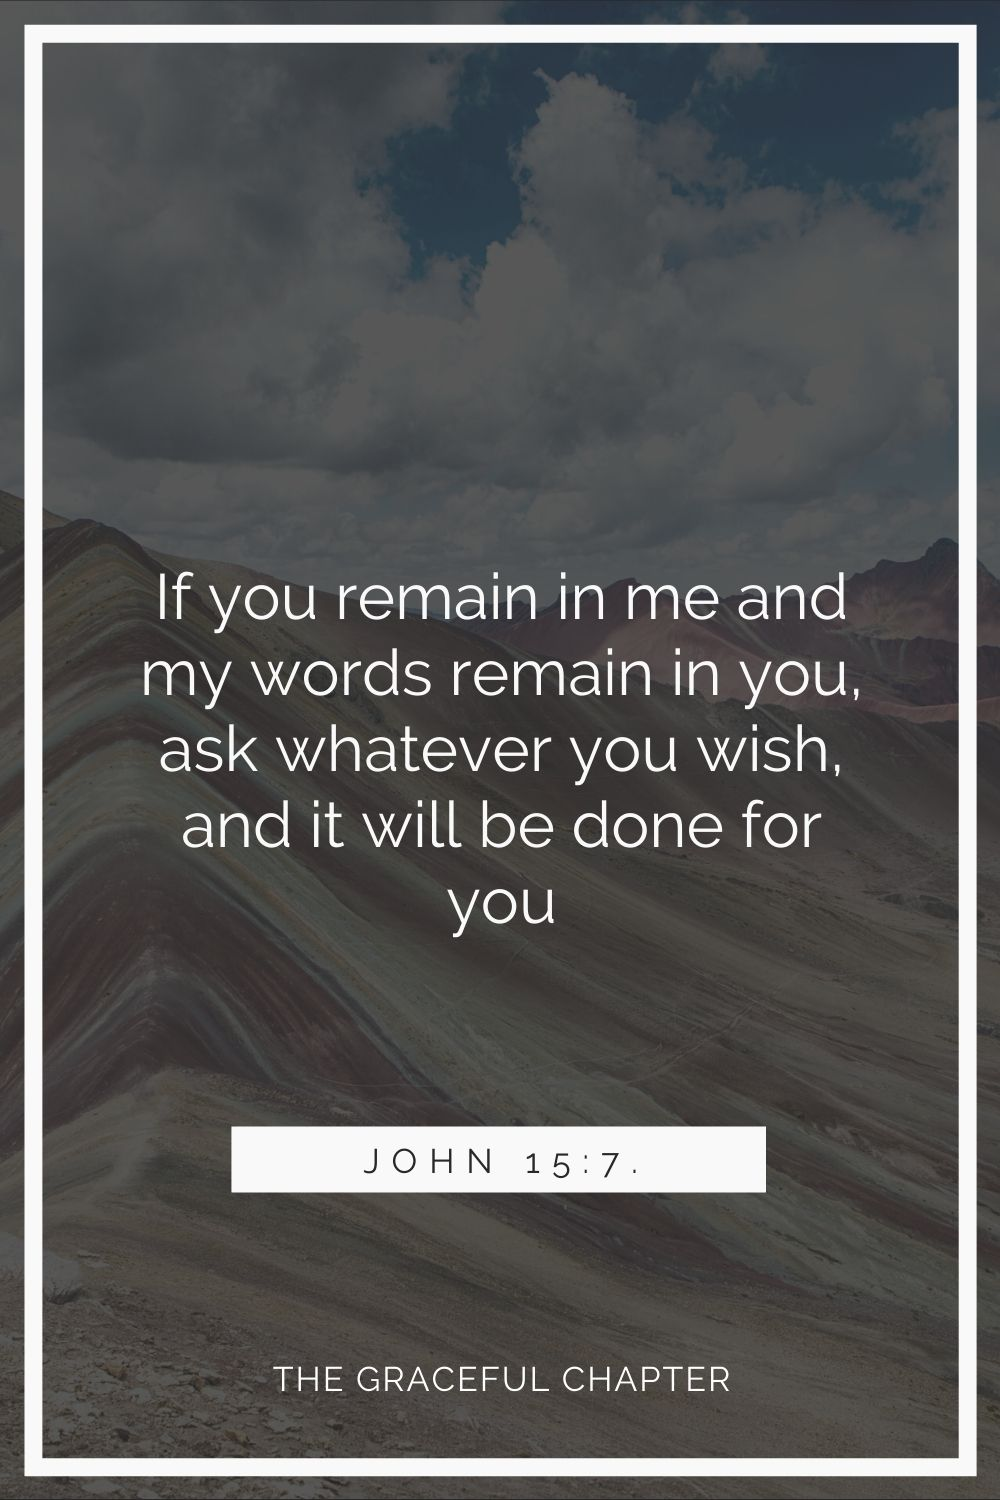 If you remain in me and my words remain in you, ask whatever you wish, and it will be done for you John 15:7.